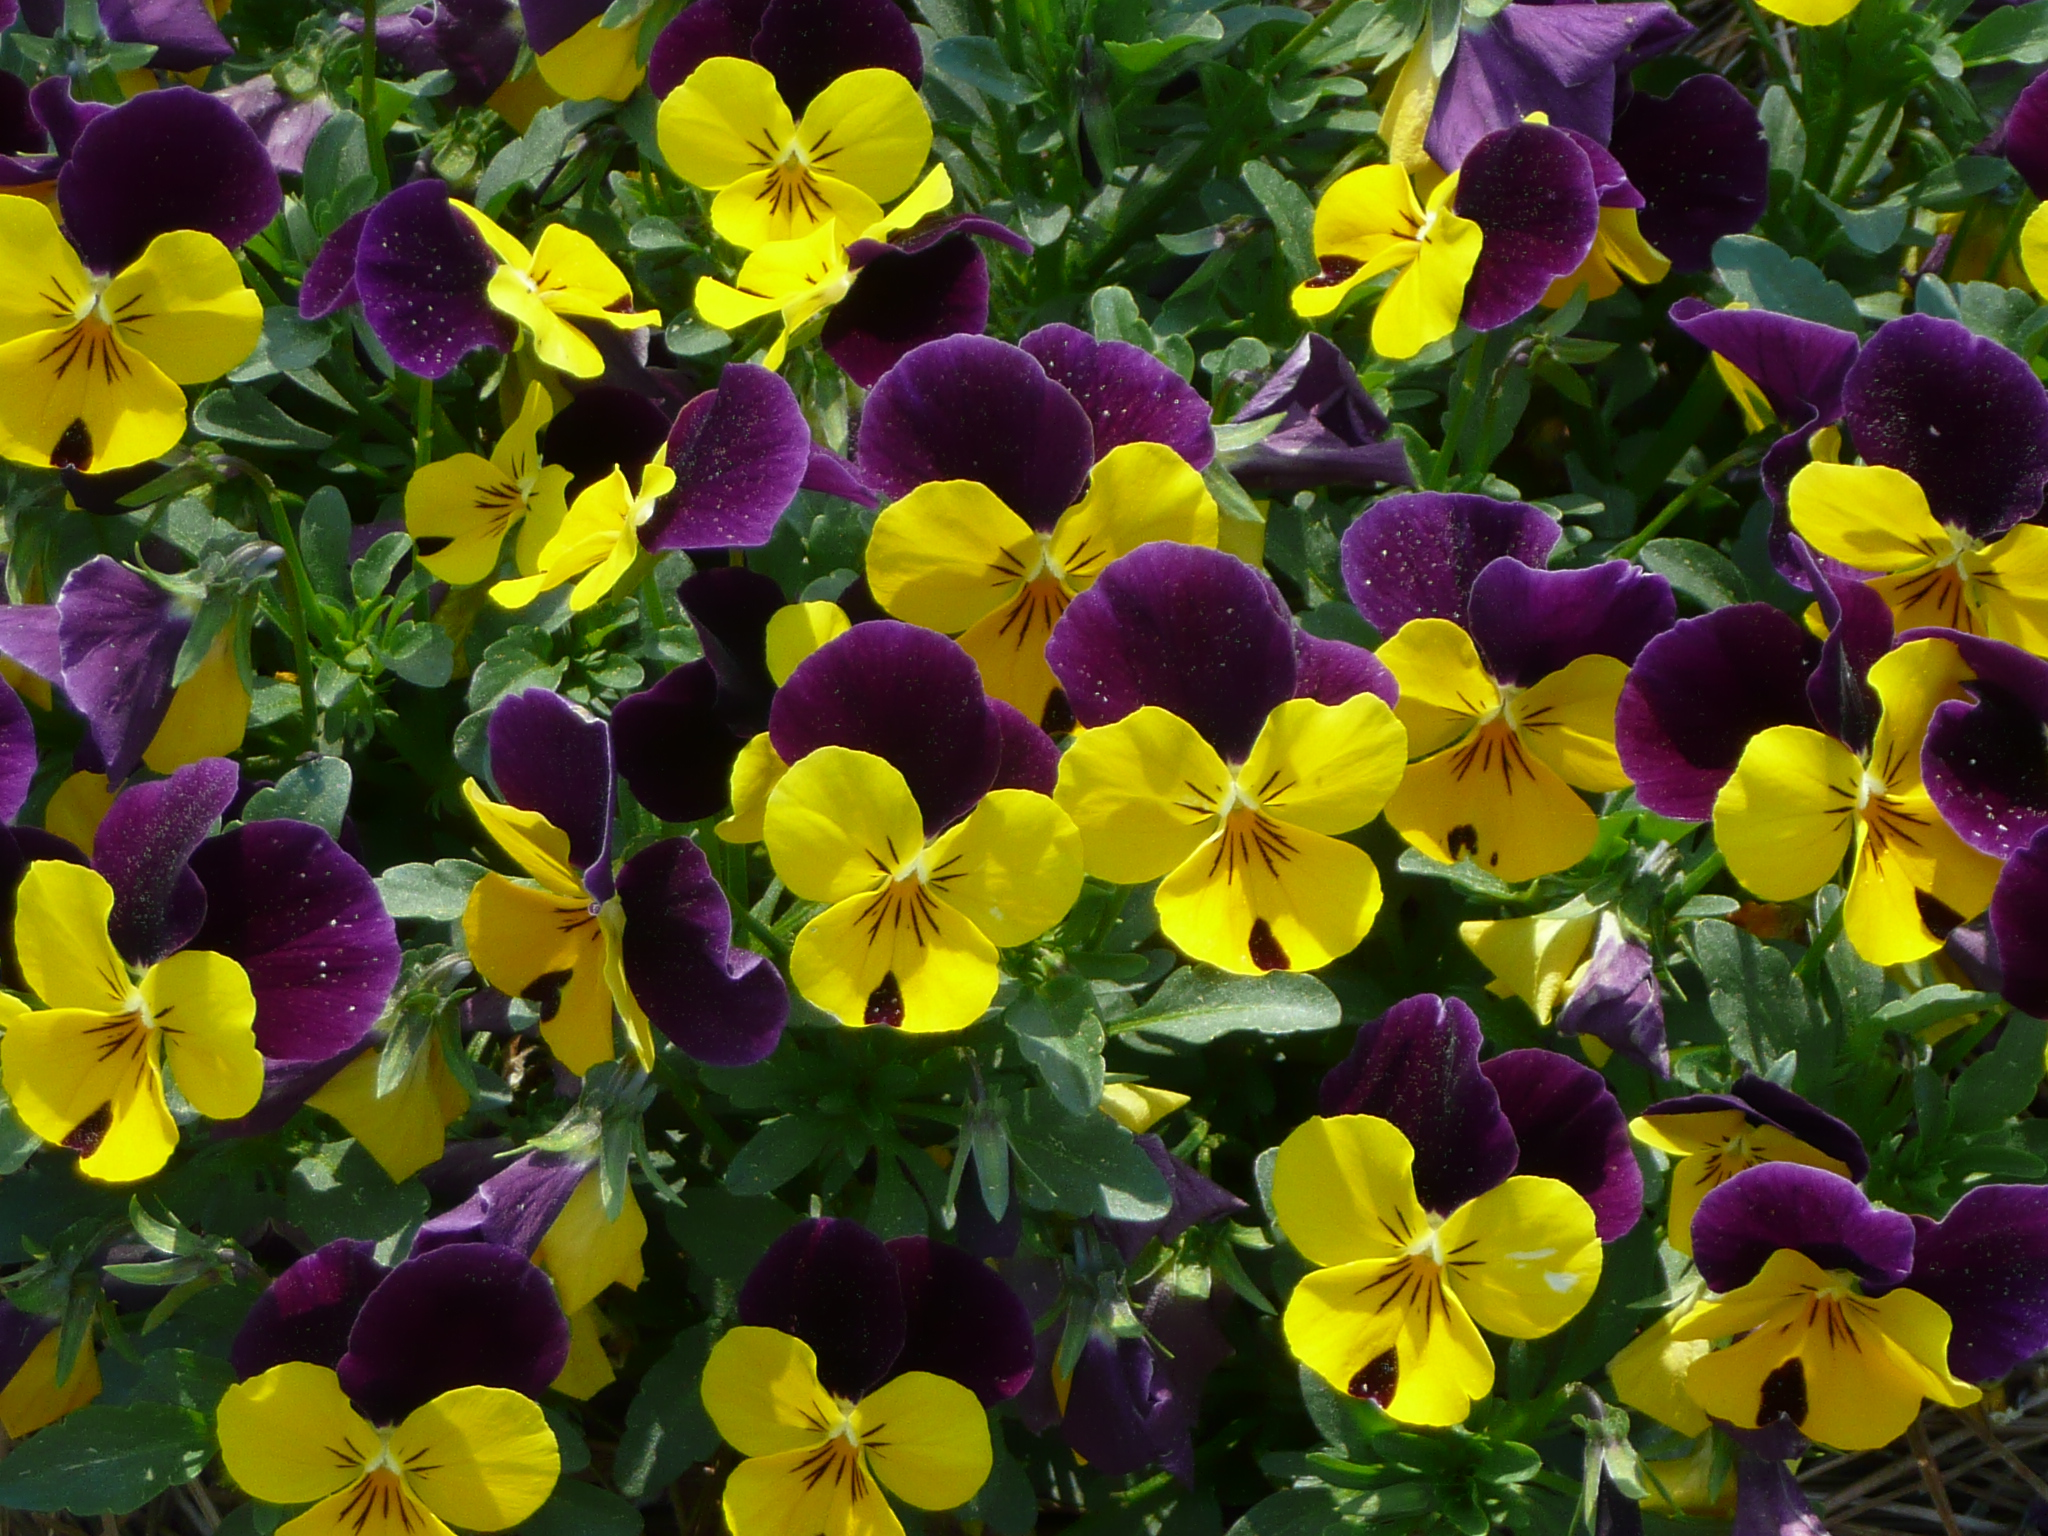 Sorbet Violas – Louisiana Super Plant Fall 2012